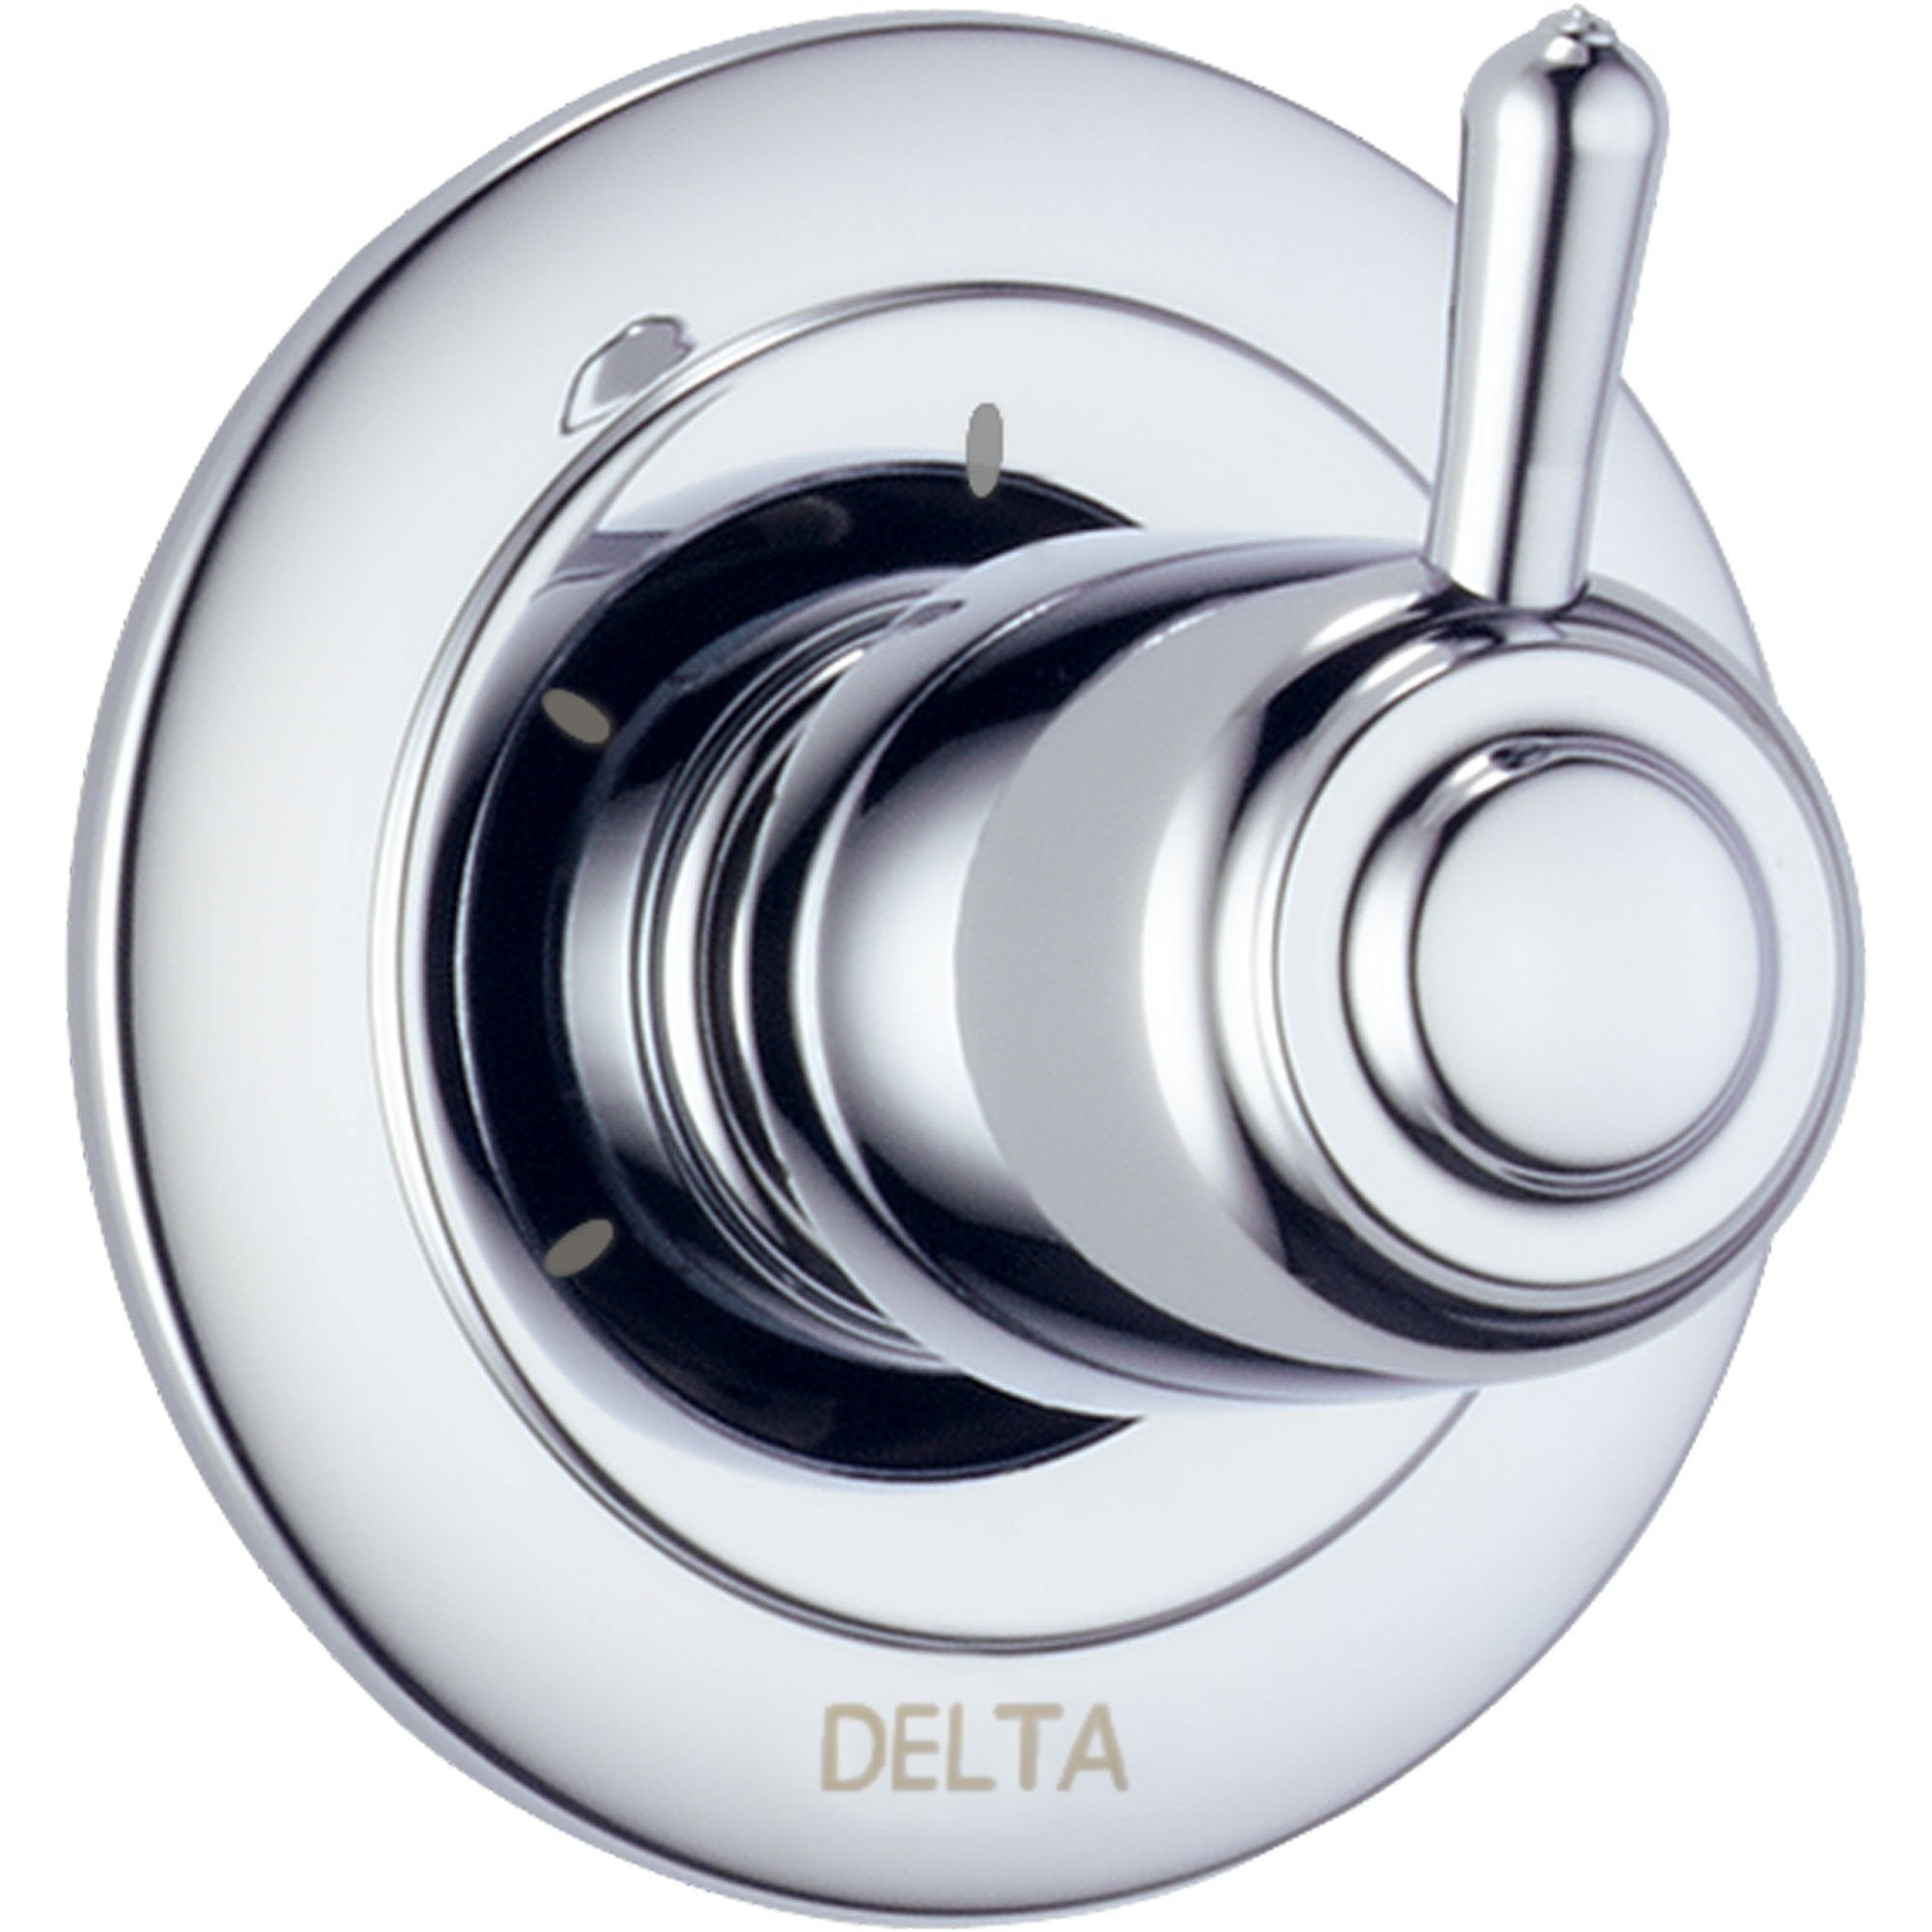 Delta 3-Setting Chrome Shower Diverter Single Handle Trim Kit 560966